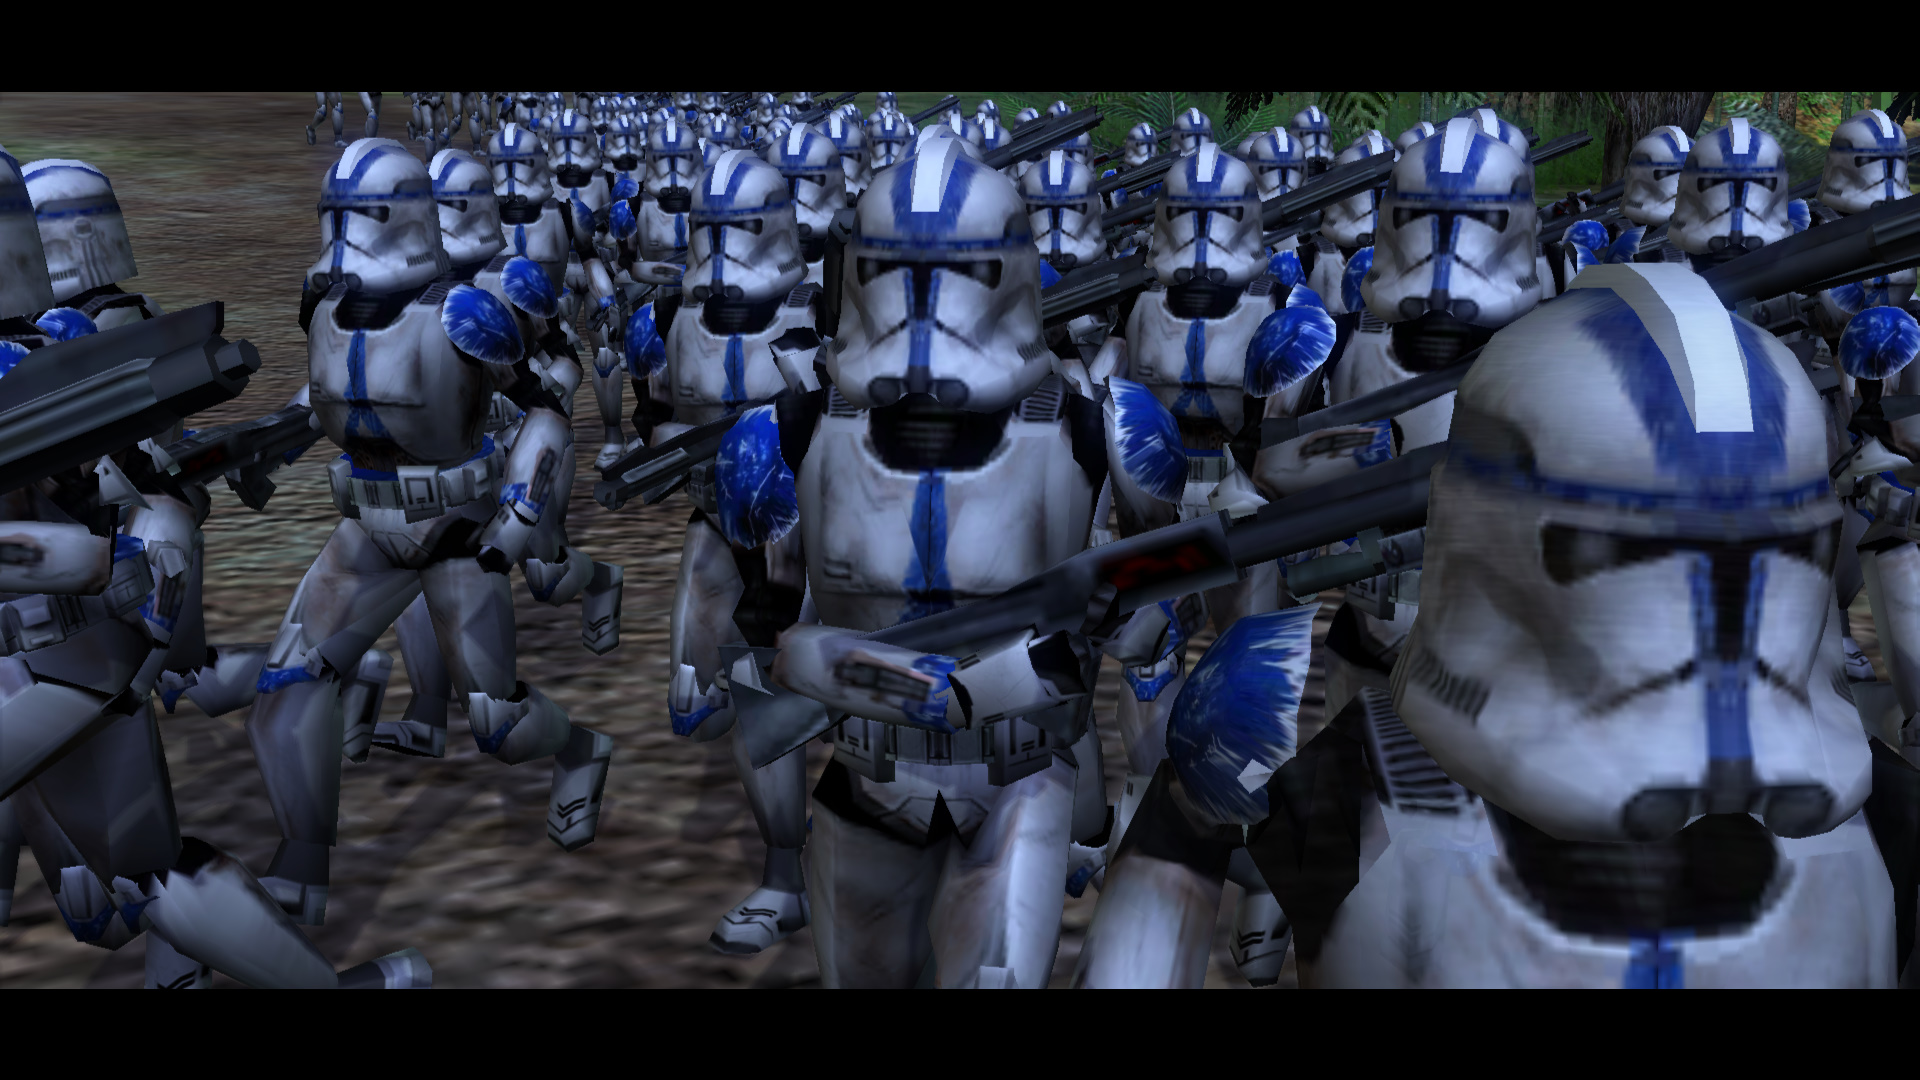 501st Legion Wallpaper 94 images in Collection Page 1 1920x1080